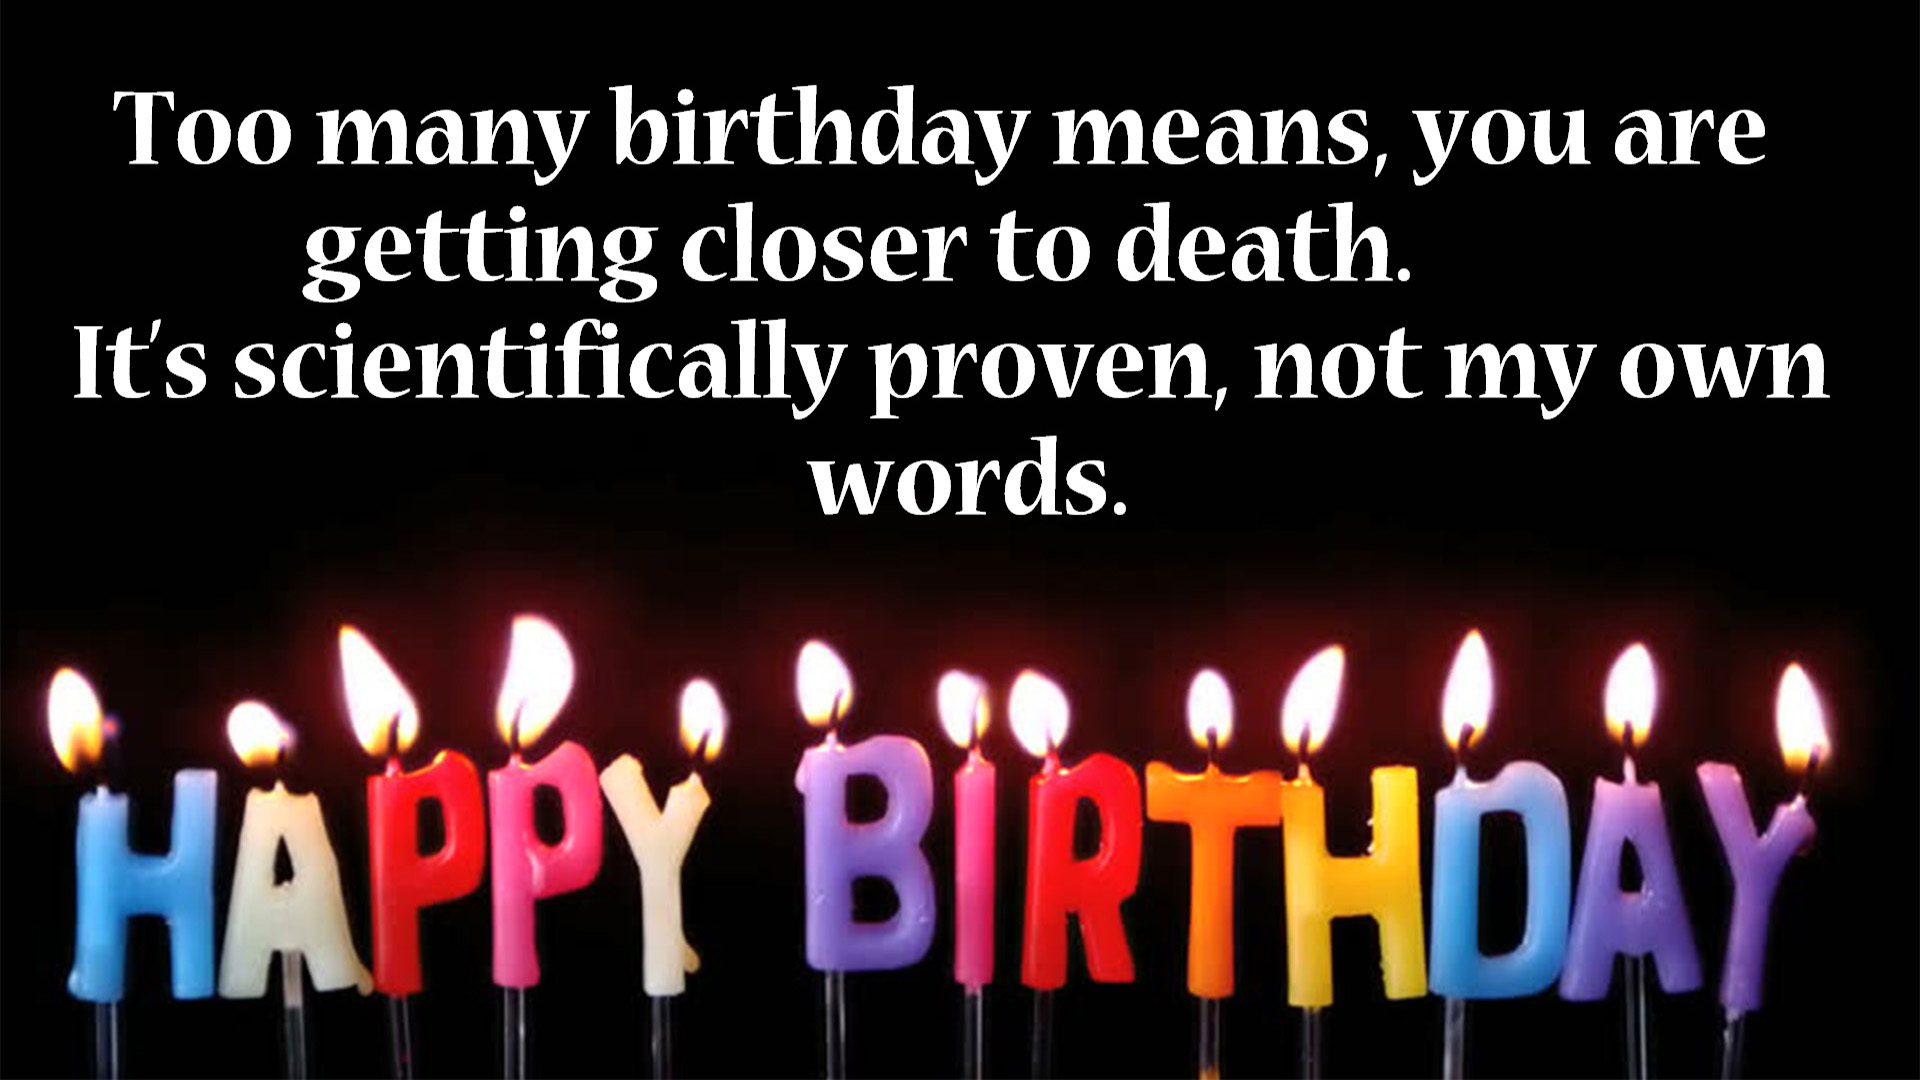 Image of: Sister Funny Birthday Wishes Quotes Hd Images Happy Birthday Funny Image Quora Funny Birthday Wishes Quotes Hd Imagess Funny Birthday Cards